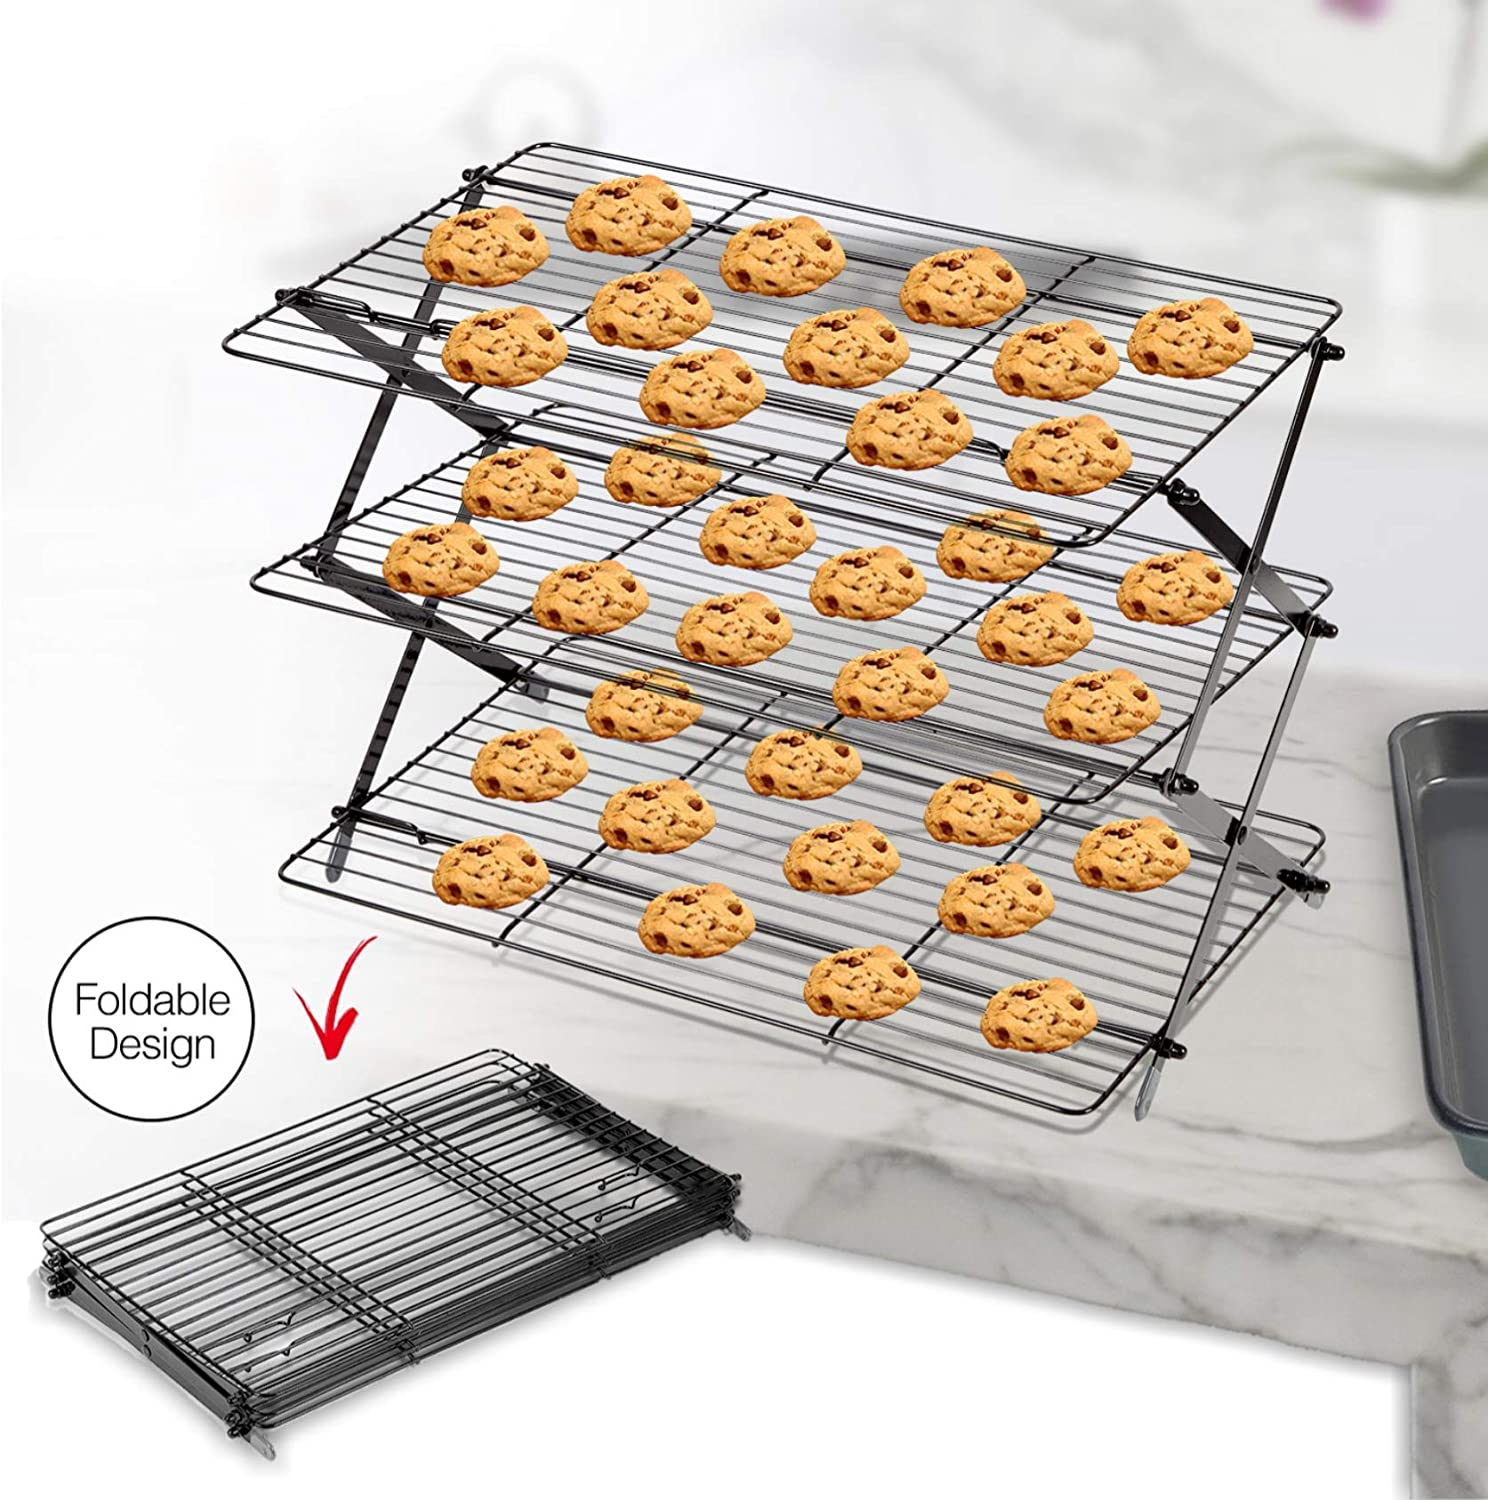 3-Tier Collapsible Cooling Rack Expandable & Collapsible Cookie Cooling Wire Rack Baking Rack Foldable Cooling Racks For Baking Premium Quality And Sturdy Legs Ideal For Baking Supplies